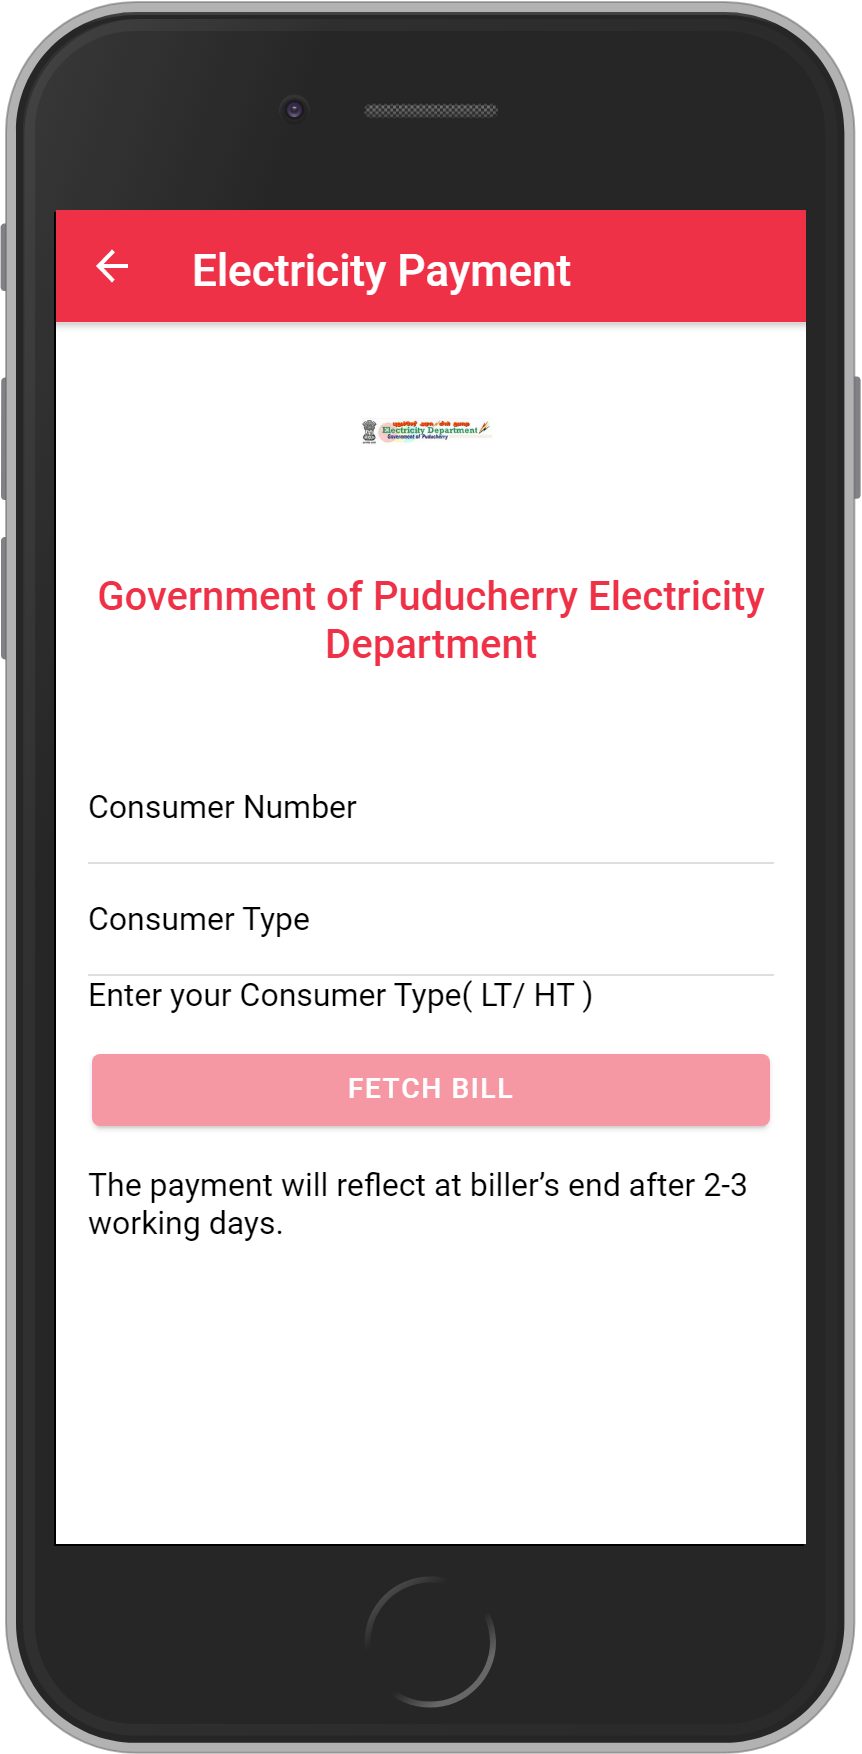 Get UNLIMITED <b>0.1%</b> CASHBACK on Government of Puducherry Electricity Department Bill Payment.